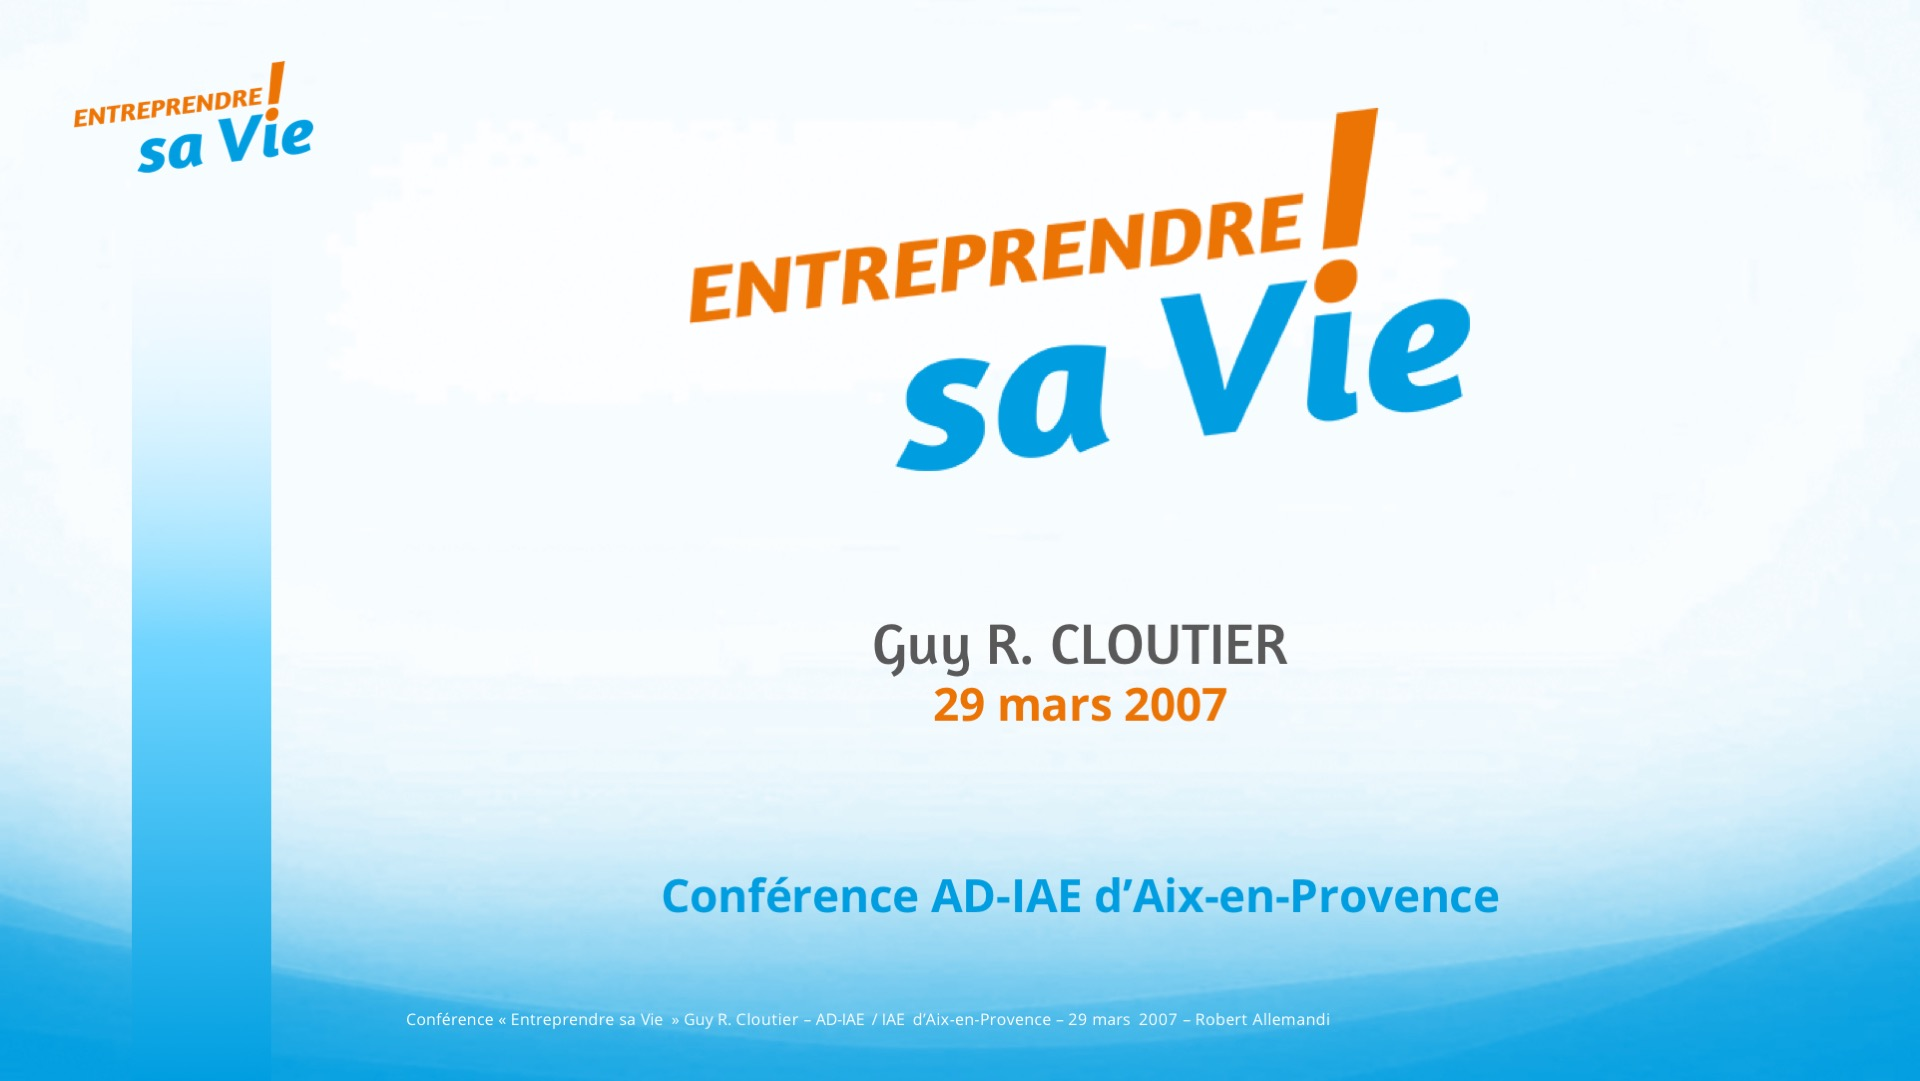 Conference-ESV-guy-r-coutier-270307-1